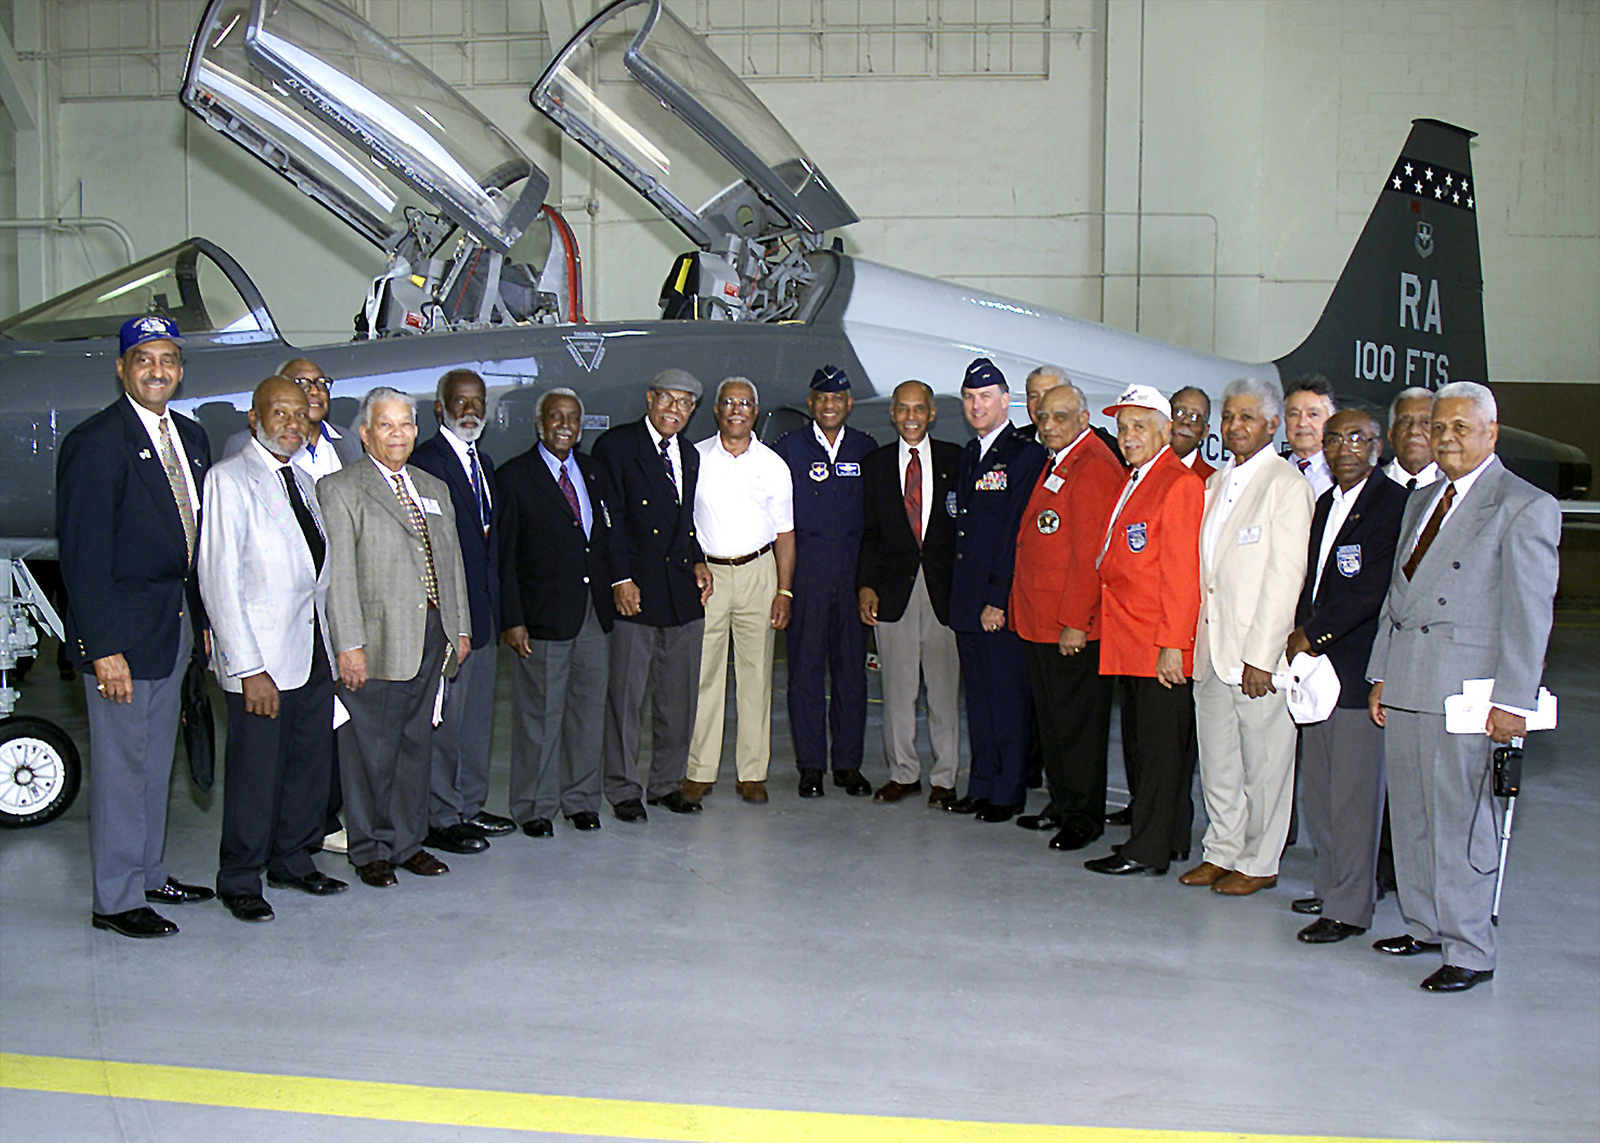 """Hangar interior, medium long shot, front view, General Lloyd W. """"Fig"""" Newton, USAF, Commander, Air Education and Training Command, Randolph Air Force Base, Texas, (center) stands with 16 Tuskegee airmen from the 100th Fighter Squadron, 340th Flying Training Group personnel and an unidentified USAF Major General in front of a T-38C Talon. The 100th FS was one of four all black units originally assigned to Tuskegee Army Air Base, Alabama. The World War II squadrons never lost a bomber under their escort to enemy fighters. Two Tuskegee Units the 99th and 100th FSs was reactivated as the 99th and 100th Flying Training Squadrons, 340th Flying Training Group, Air Force Reserve Command"""